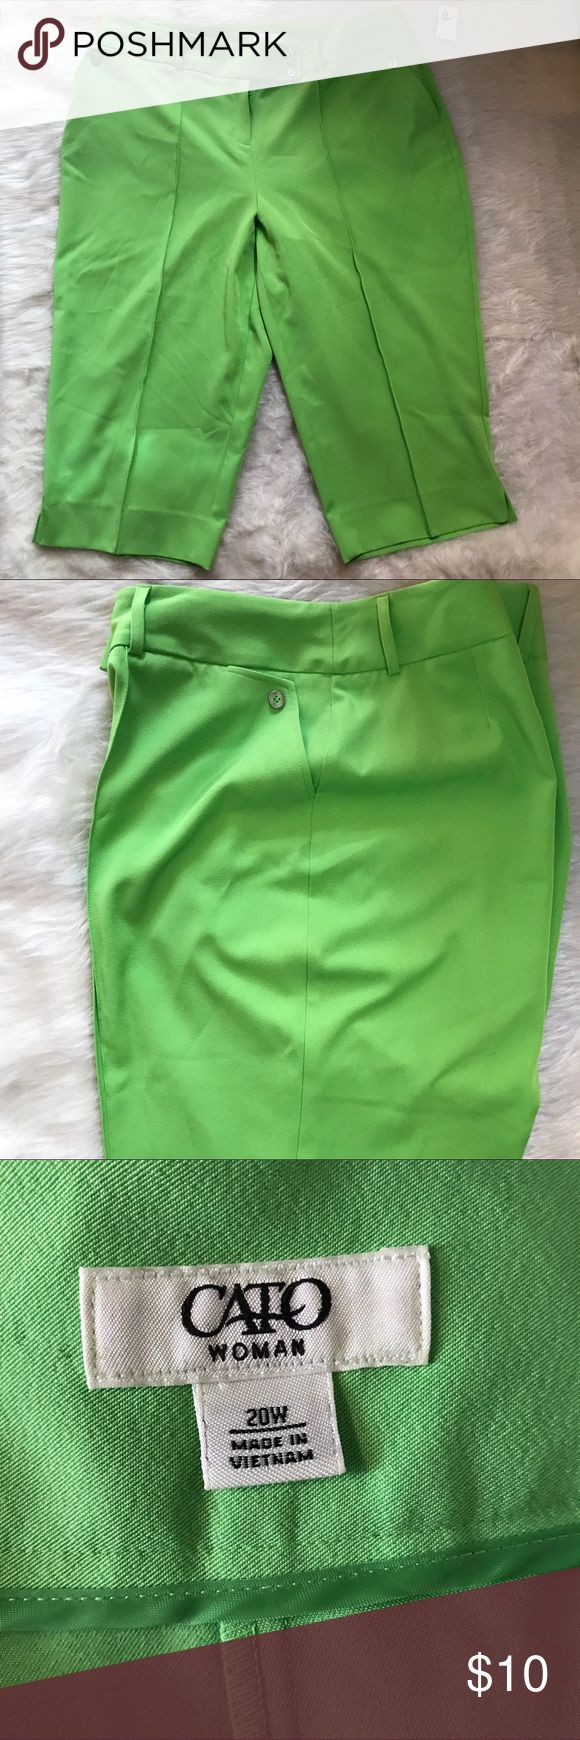 ✔️NWT Cato Woman Plus Size Bermuda Pants 20W ✔️Cato✔️Plus Size 20W✔️Lime Green✔️These cuties have a stay stick down the front✔️NWT✔️Bermuda Pants Cato Woman Pants Capris